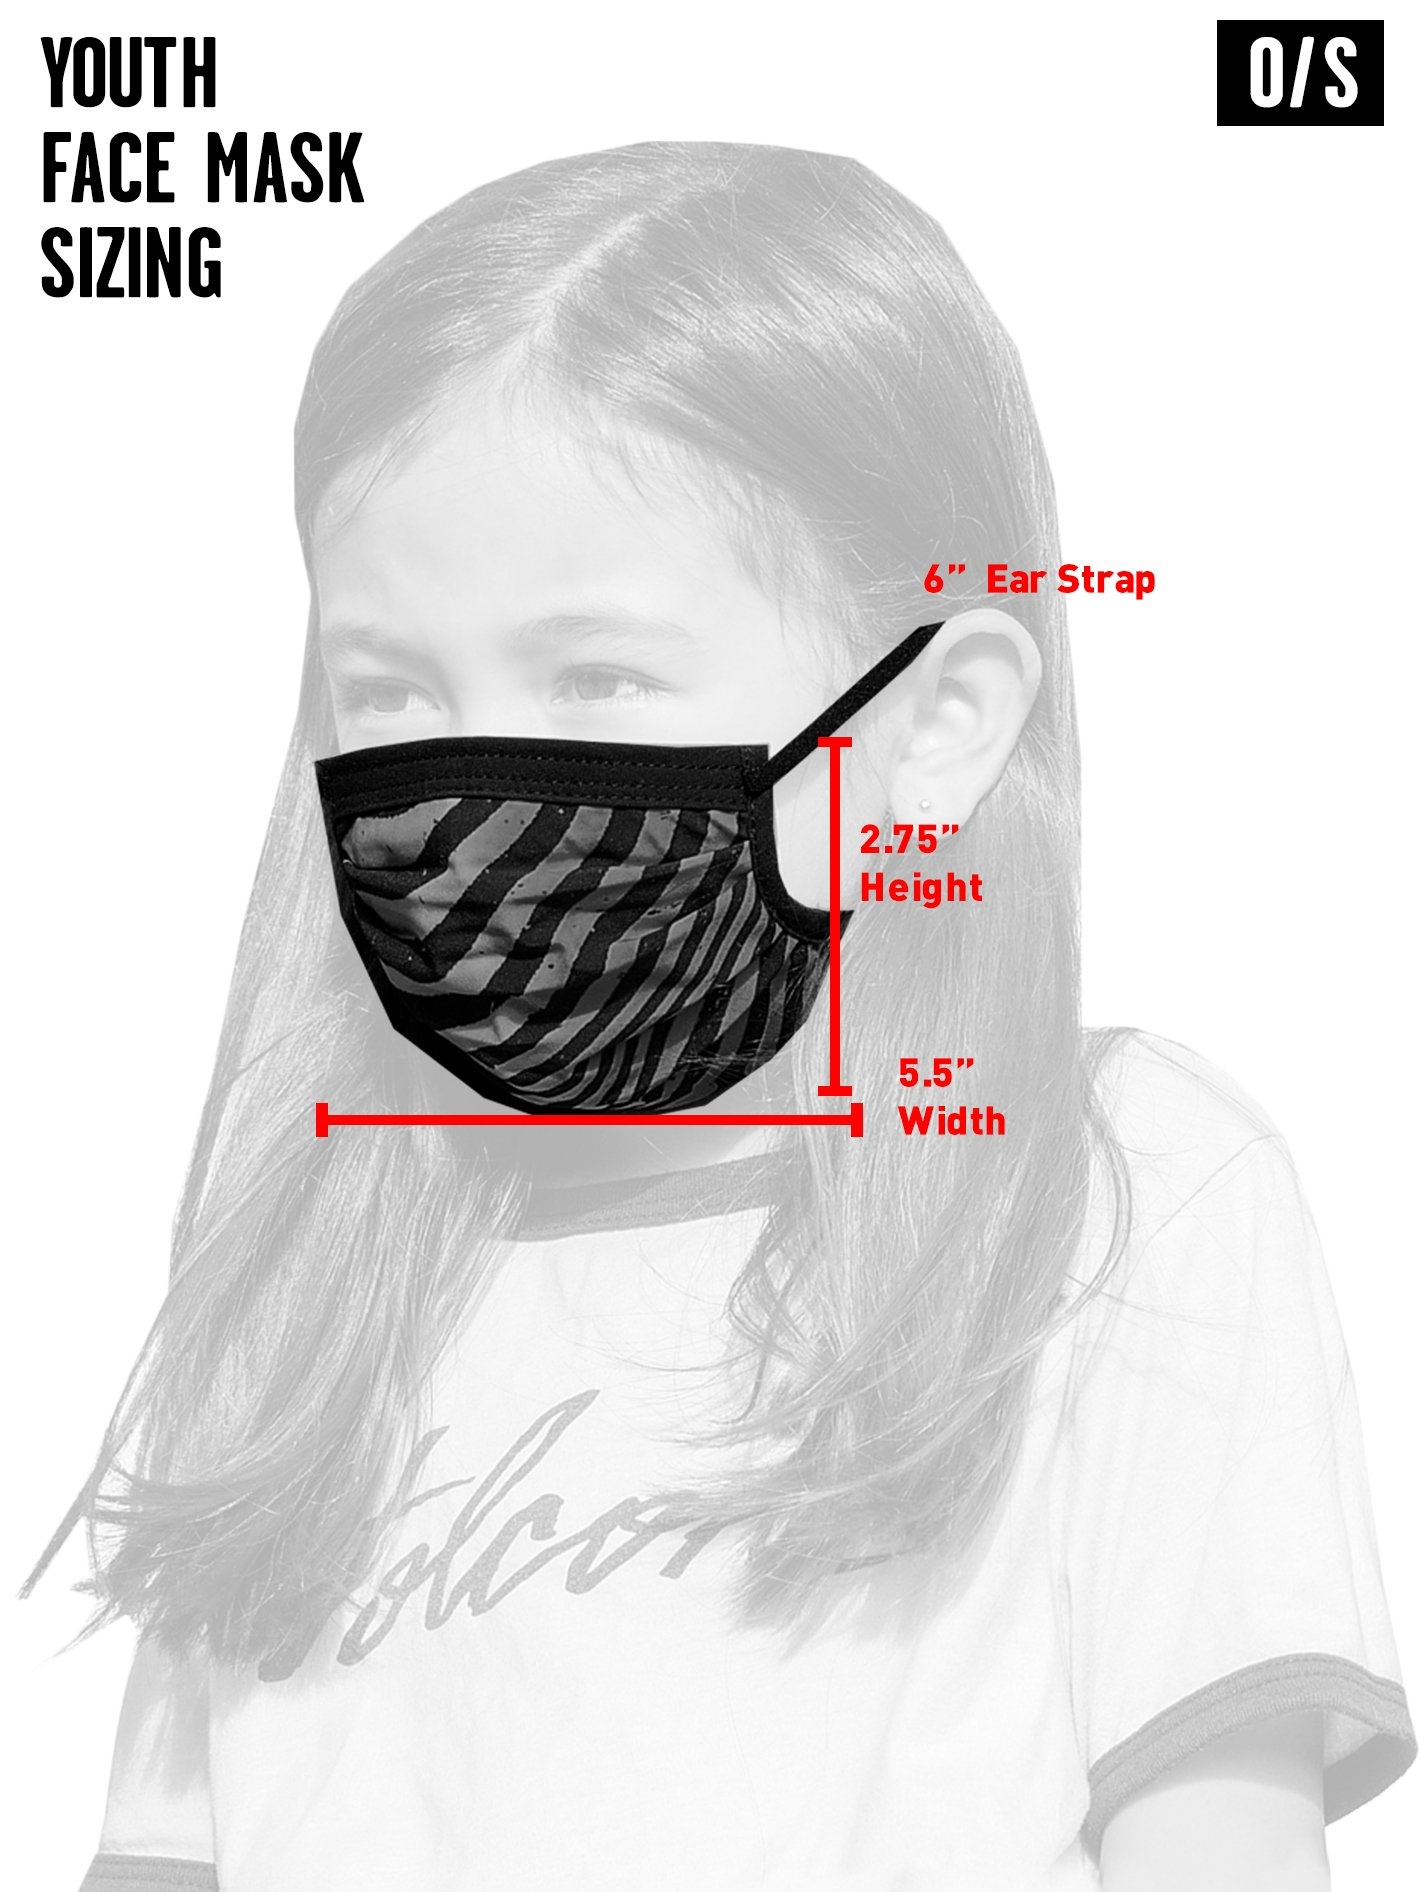 Vco Youth Facemask-2